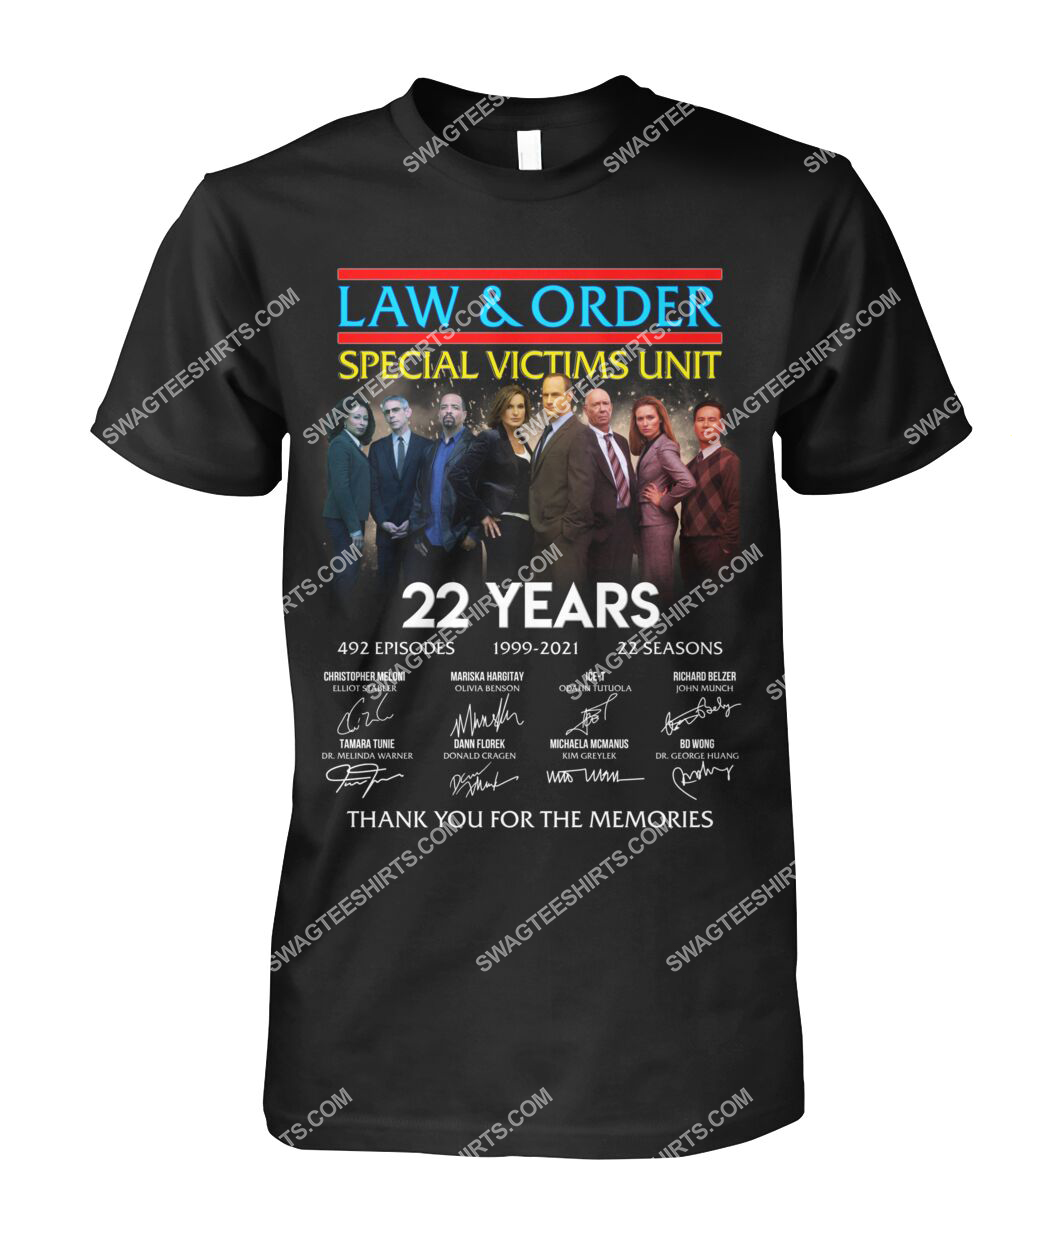 law and order 22 years thank you for memories signature tshirt 1